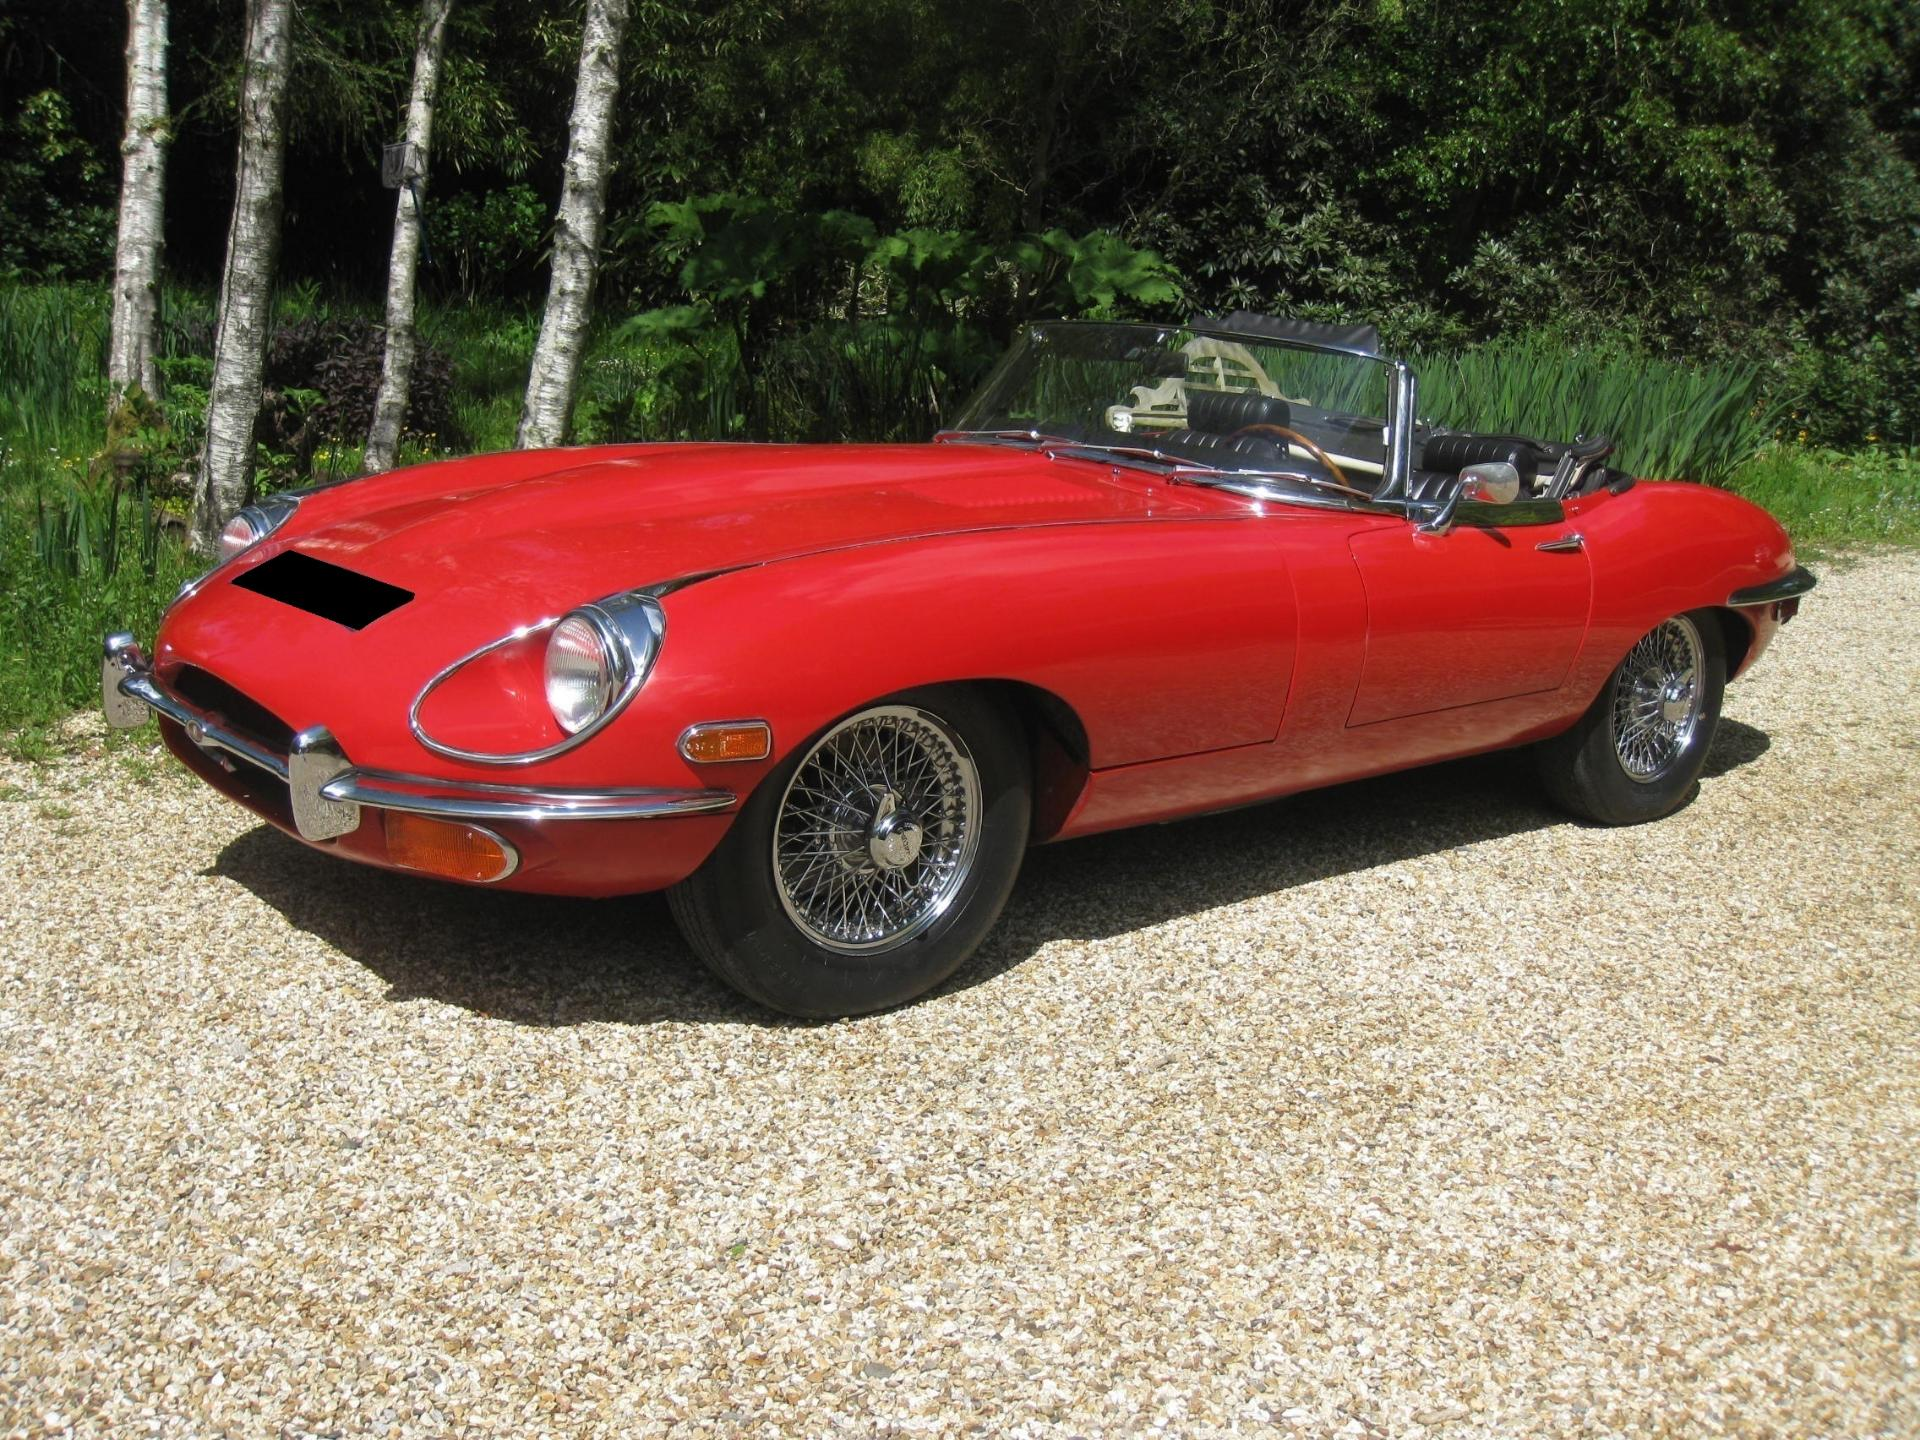 1969 Jaguar E TYPE Roadster For Sale In Landford, Wiltshire